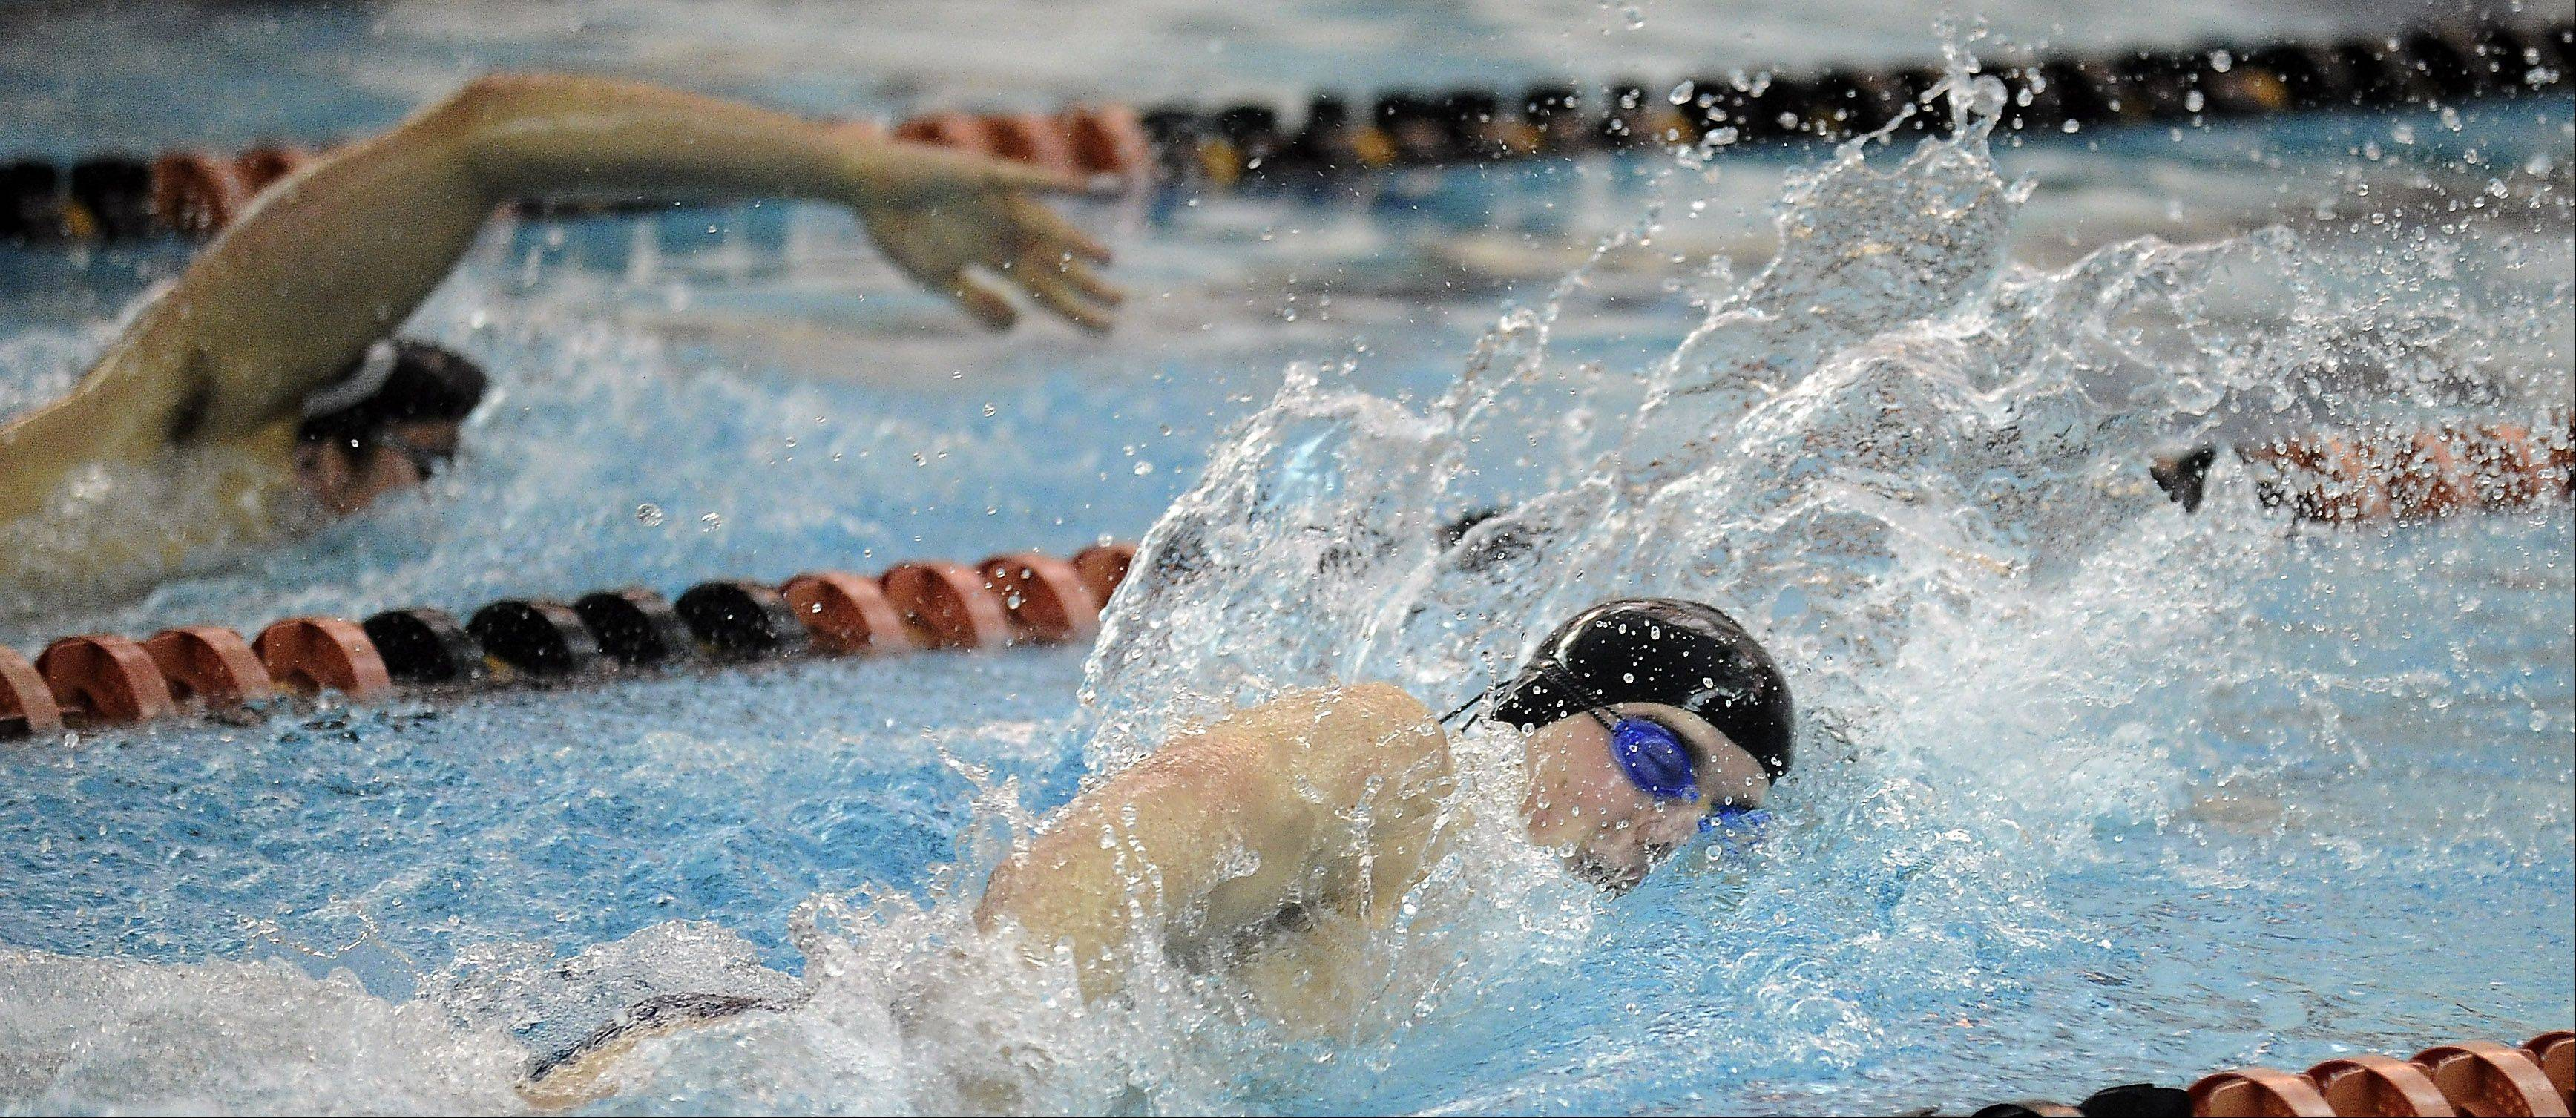 Barrington's Jack Strauss, top, and Conant's Jonathon Burke go neck and neck in the 200-yard freestyle with Burke pulling ahead for the win at Barrington on Friday.